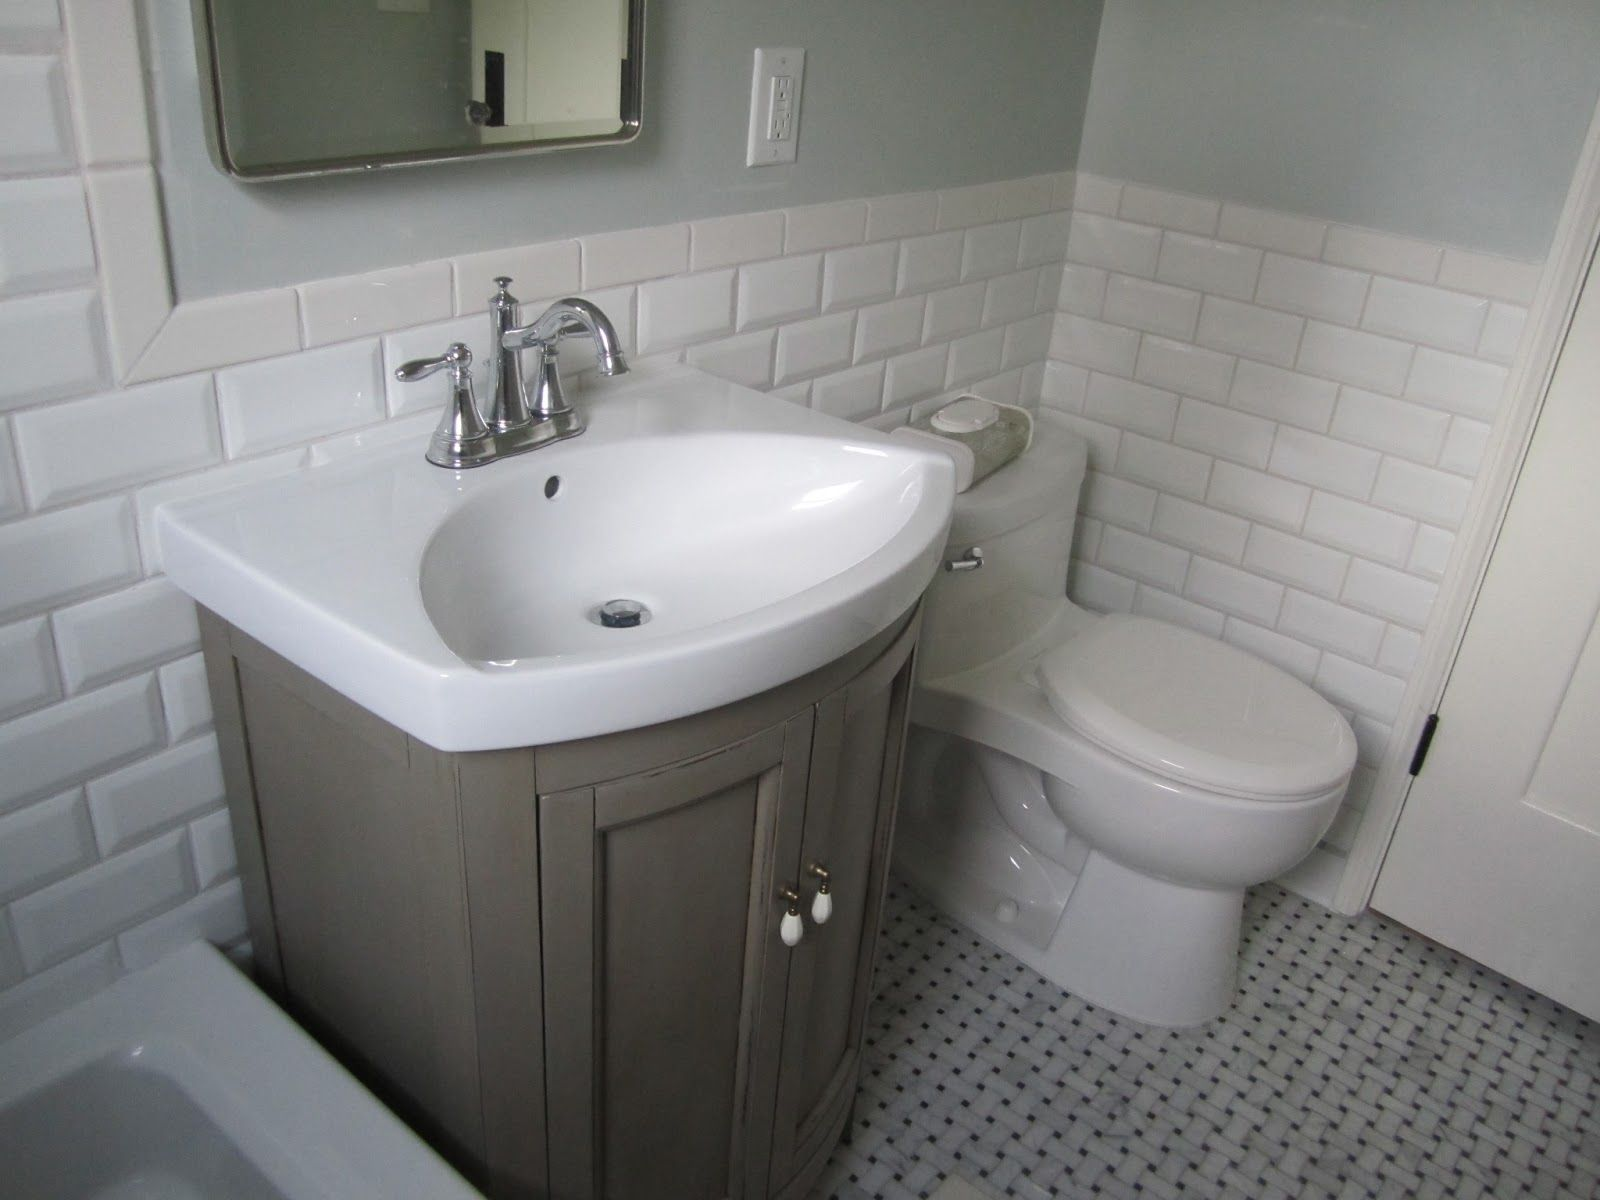 Classy White Subway Ceramic Bath Wall Tiled And Gray Single Sink Small Vanity As Decorate In